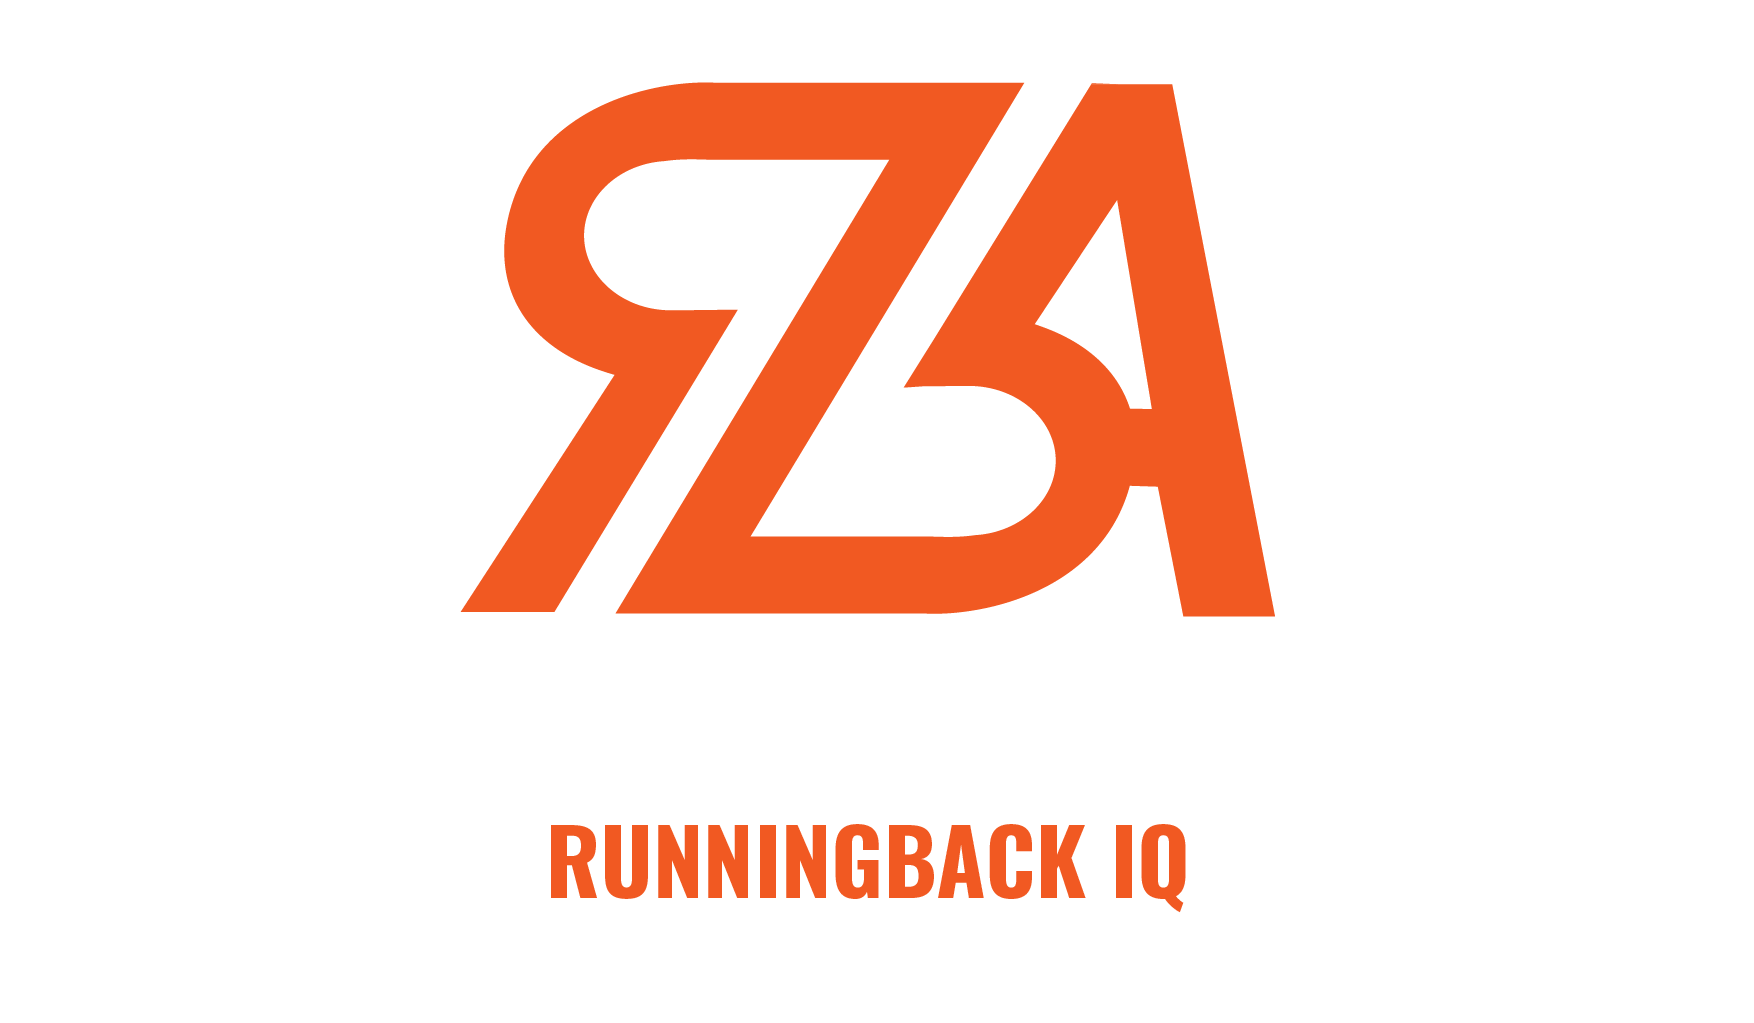 Running_back_academy [Recovered]-07